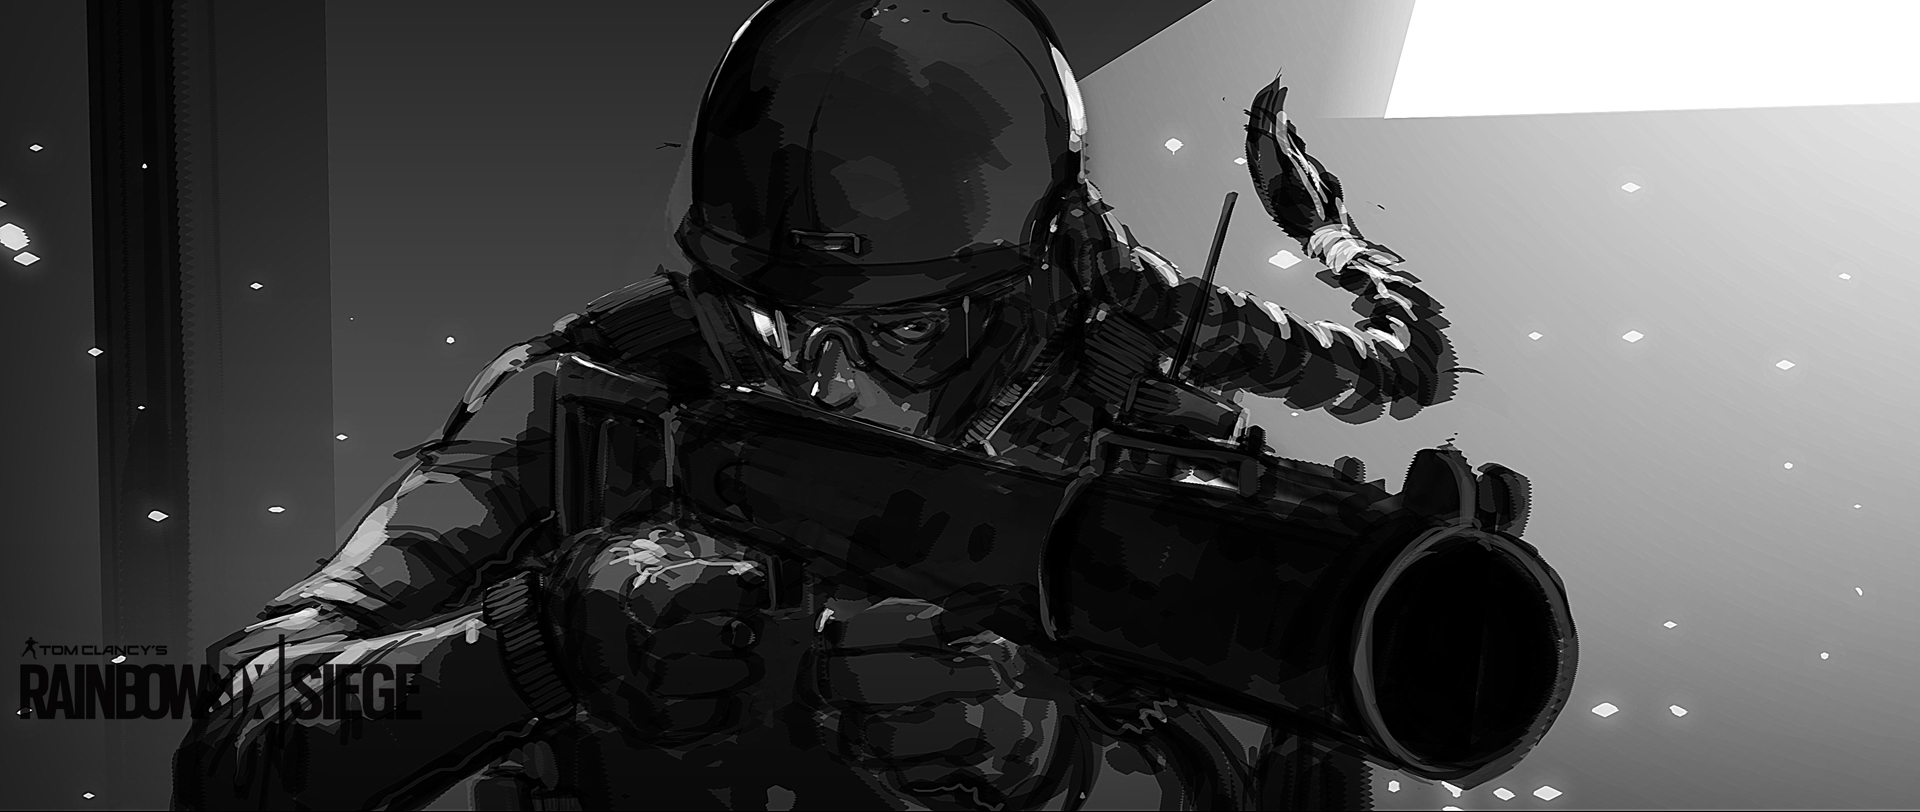 OPERATOR SPOTLIGHT #6: ASH (FBI SWAT UNIT)